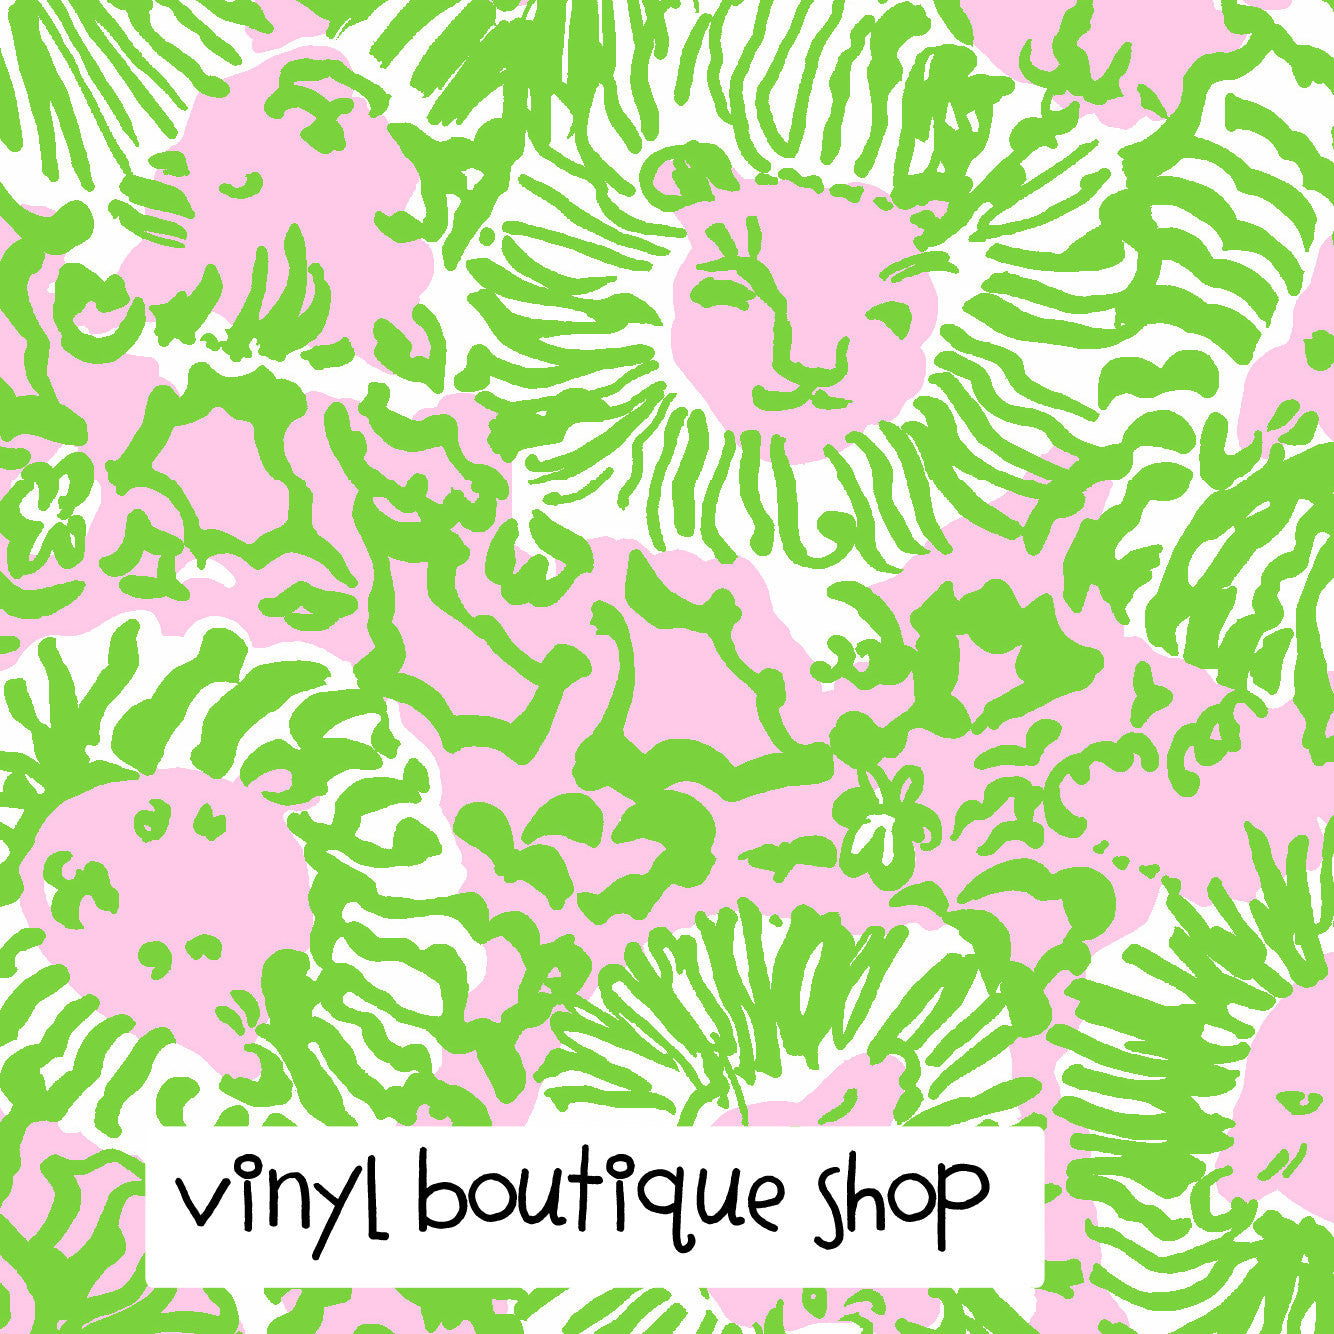 Sunnyside Green Lilly Inspired Printed Patterned Craft Vinyl - Vinyl Boutique Shop